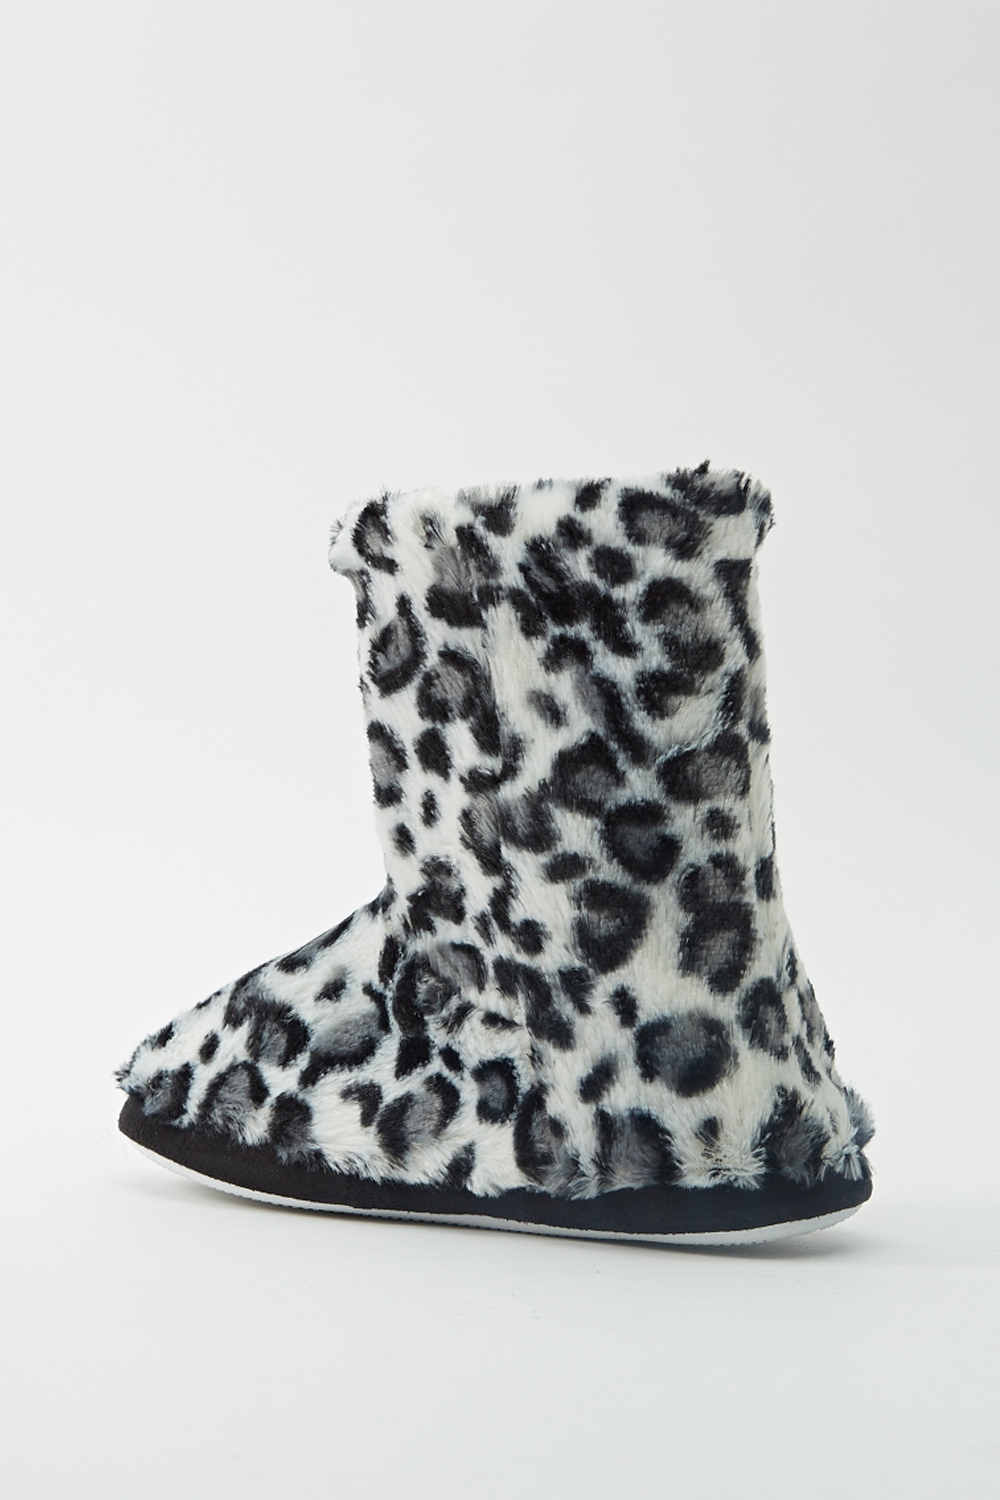 Leopard Print Baven Boot Slippers. You're hardly the serious type. Every now and then, you like to play a glamorous part. This is a pair of genuine and authentic kate spade New York. Printed faux fur Vionic Orthaheel Indulge VANAH Tan Leopard Slipper Boot Slippers Women's Size 7.